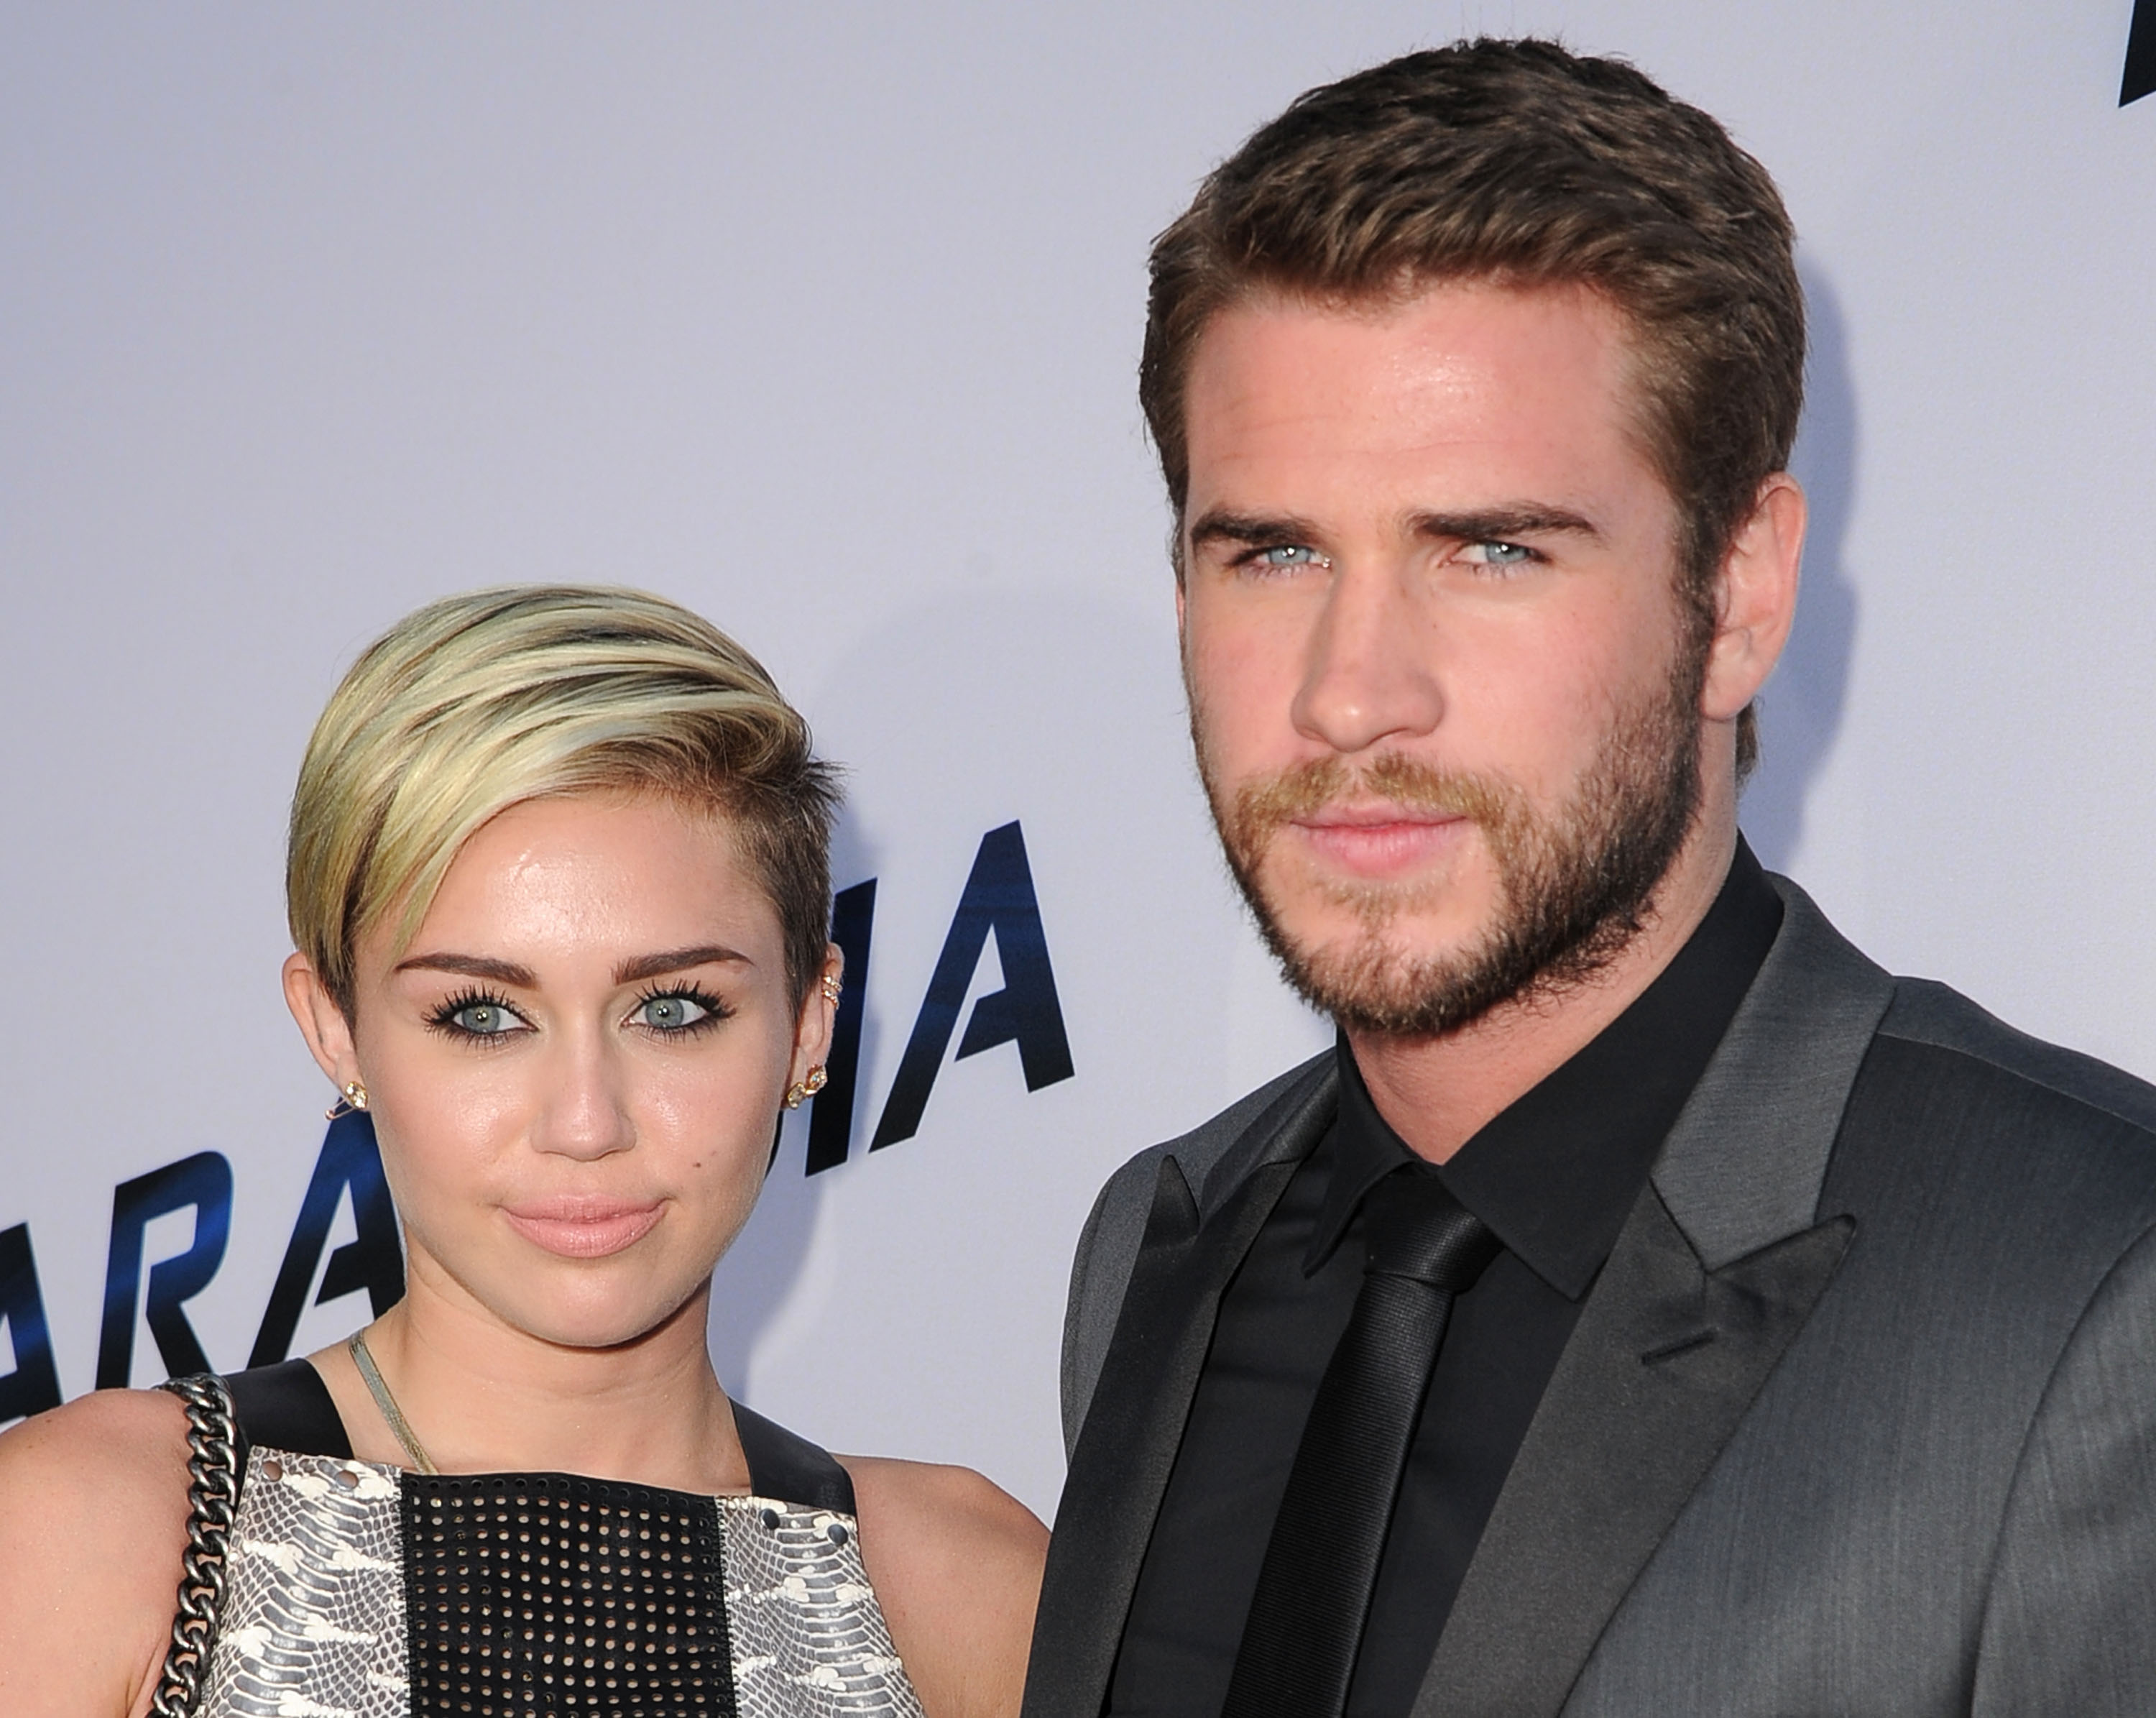 Miley Cyrus and Liam Hemsworth just went on a date, and it looks like a psychedelic dream